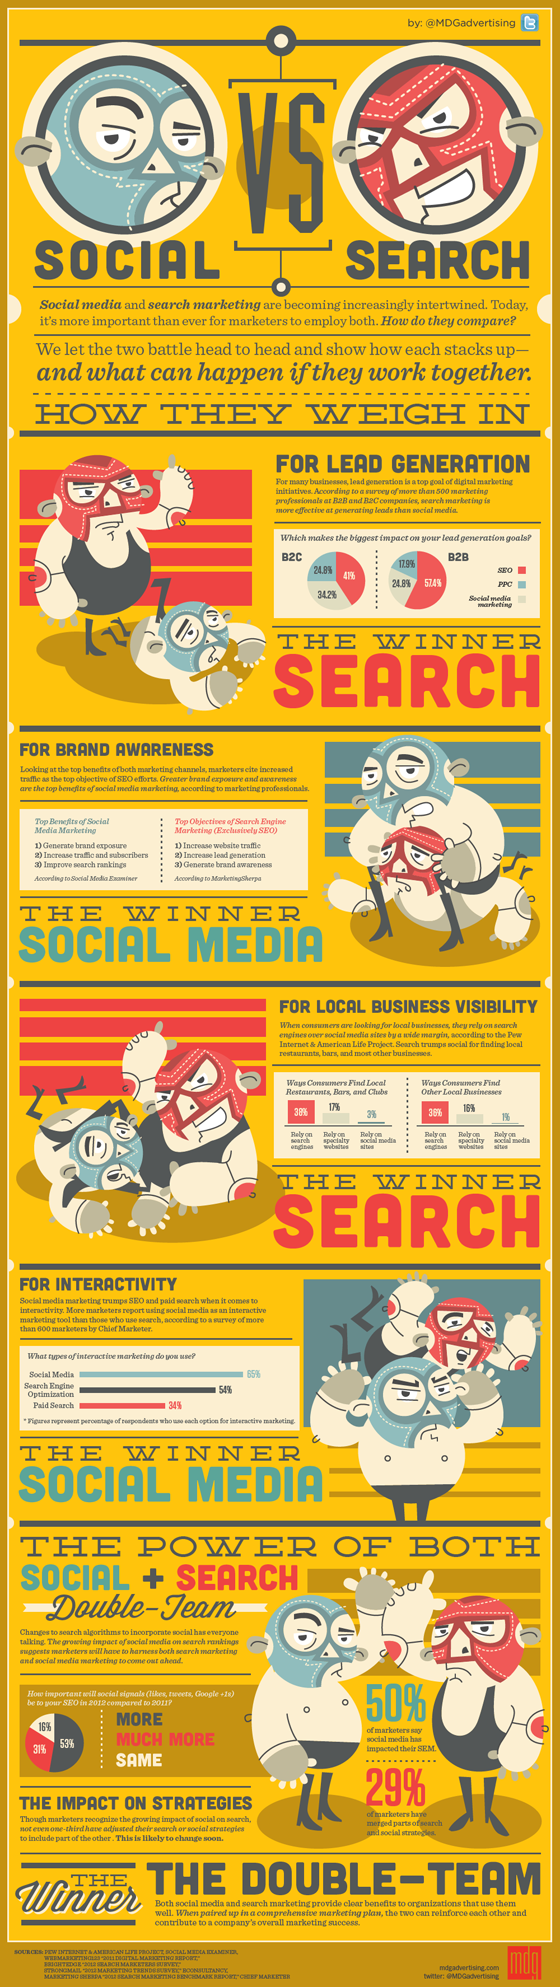 social-vs search-infographic-560